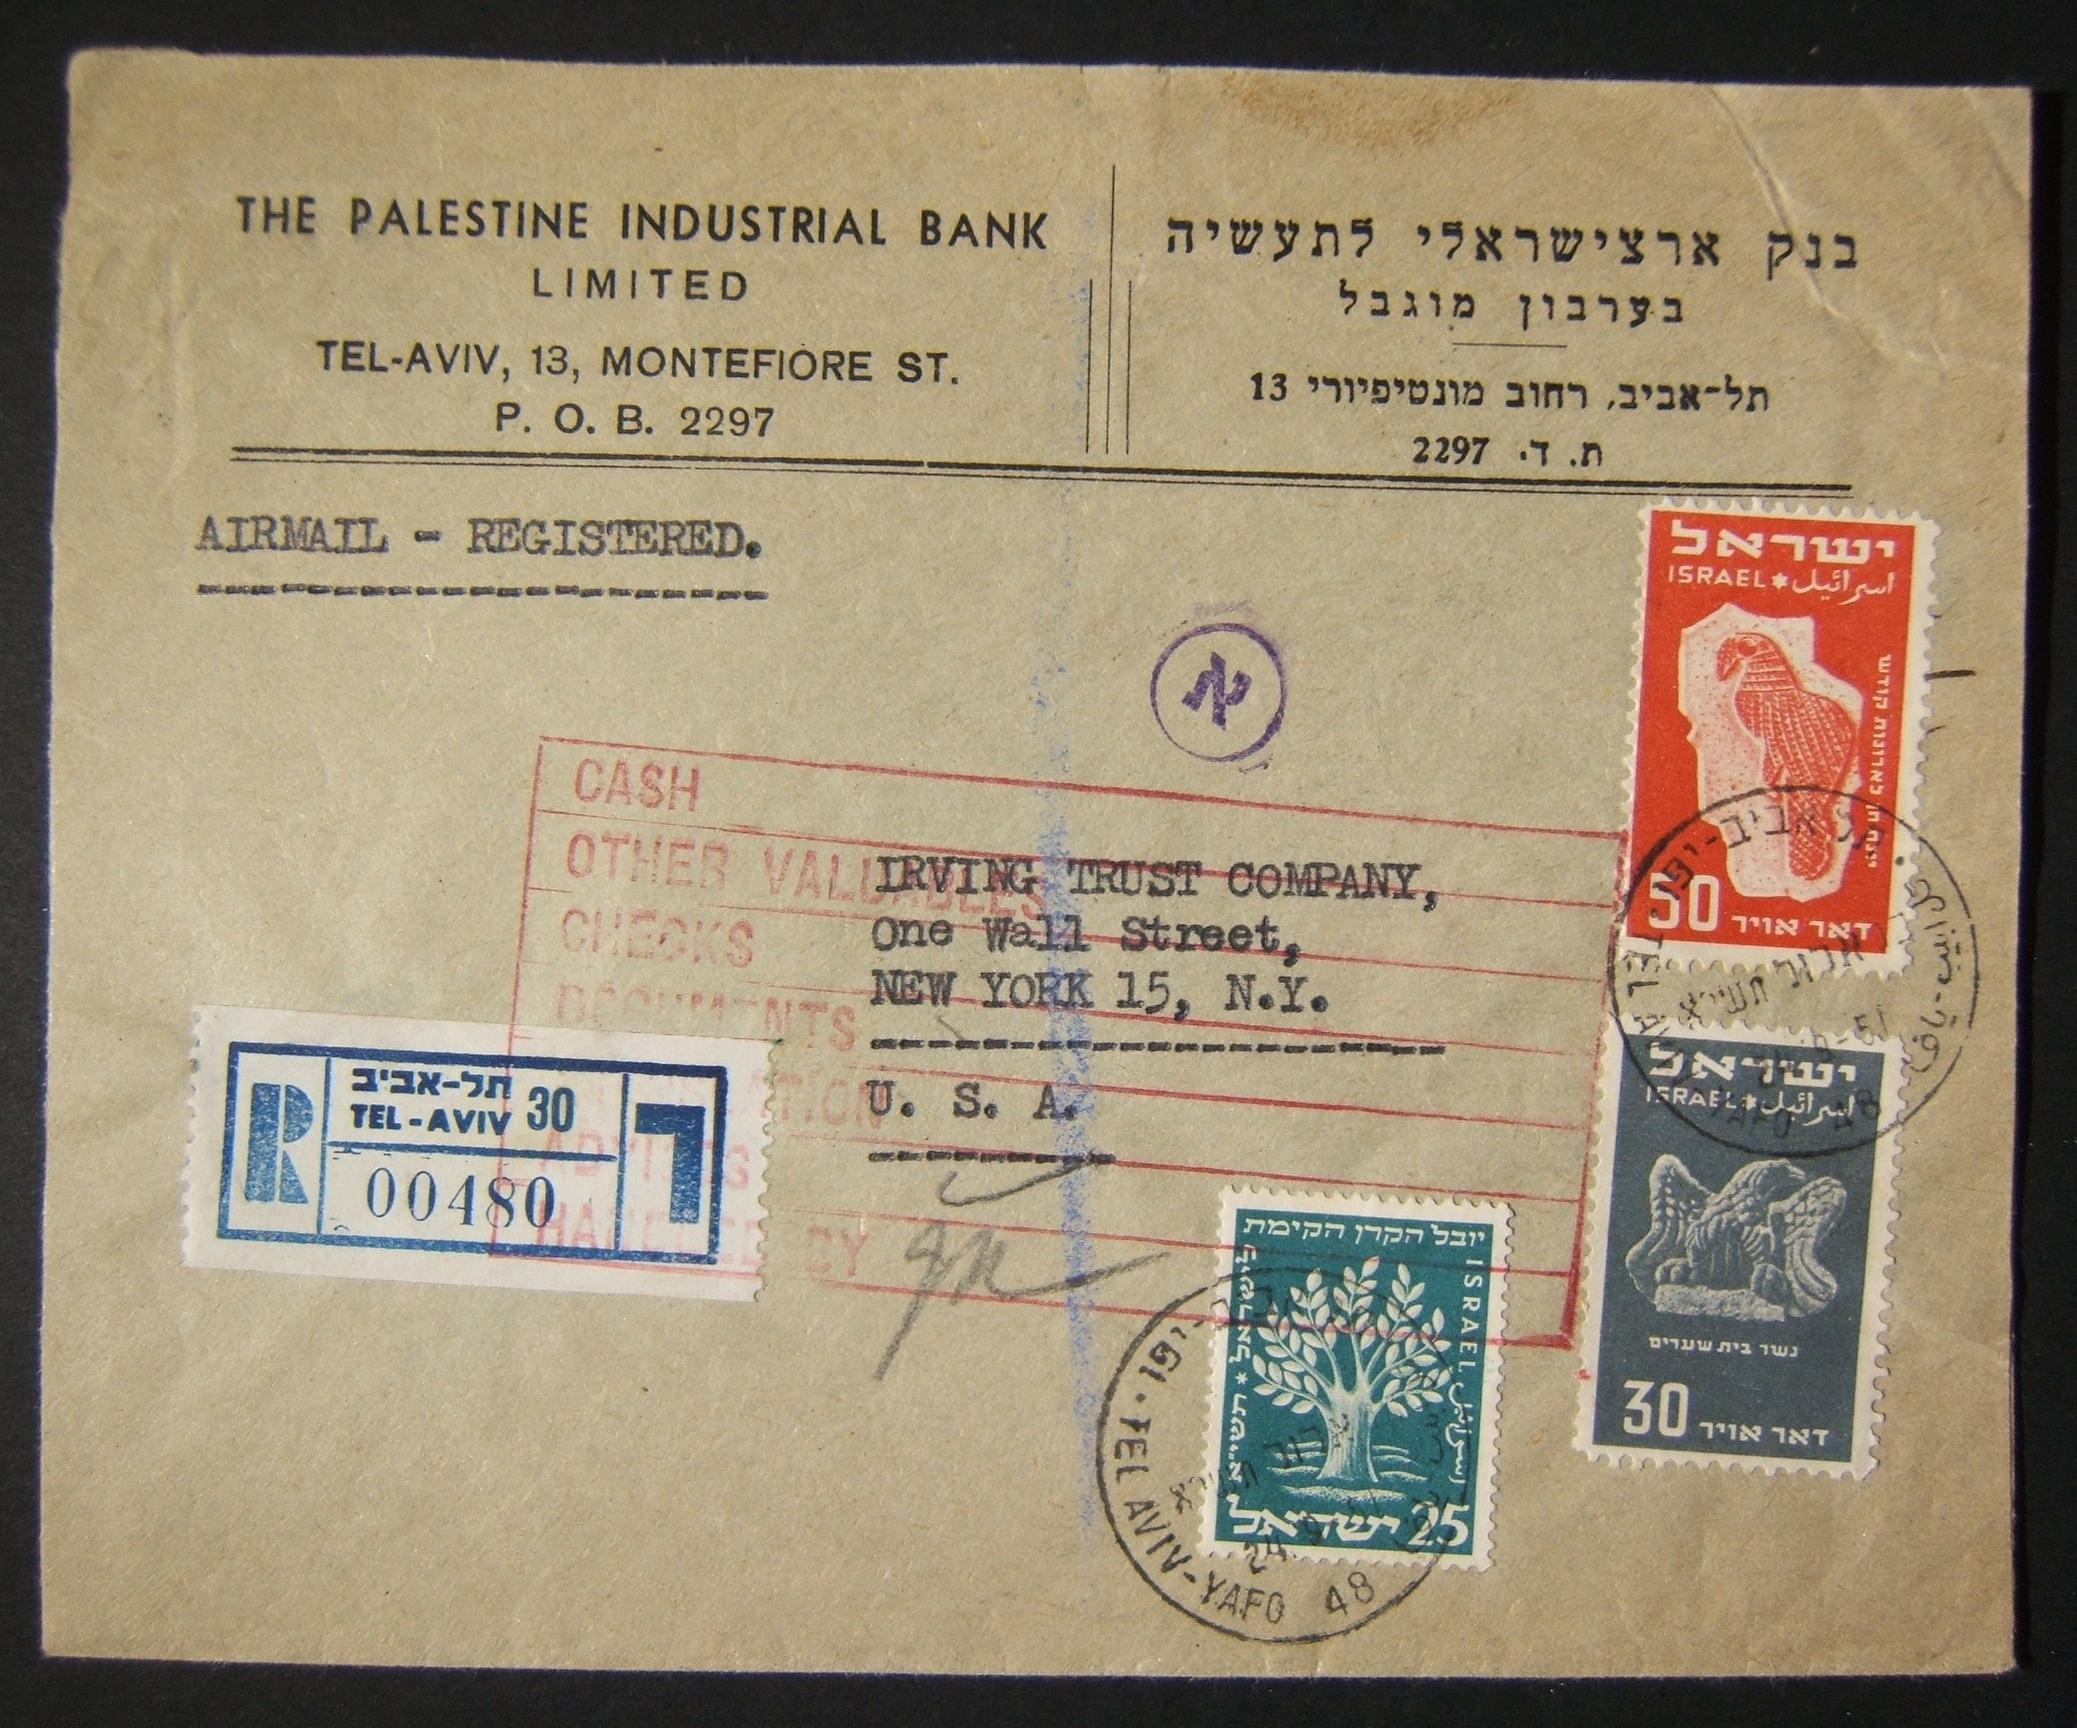 1950 1st airmail / PO's, rates & routes: 24-9-1951 business stationary registered airmail commercial cover ex TLV to NYC franked 105pr at the FA-2a period rate (80pr letter + 25pr